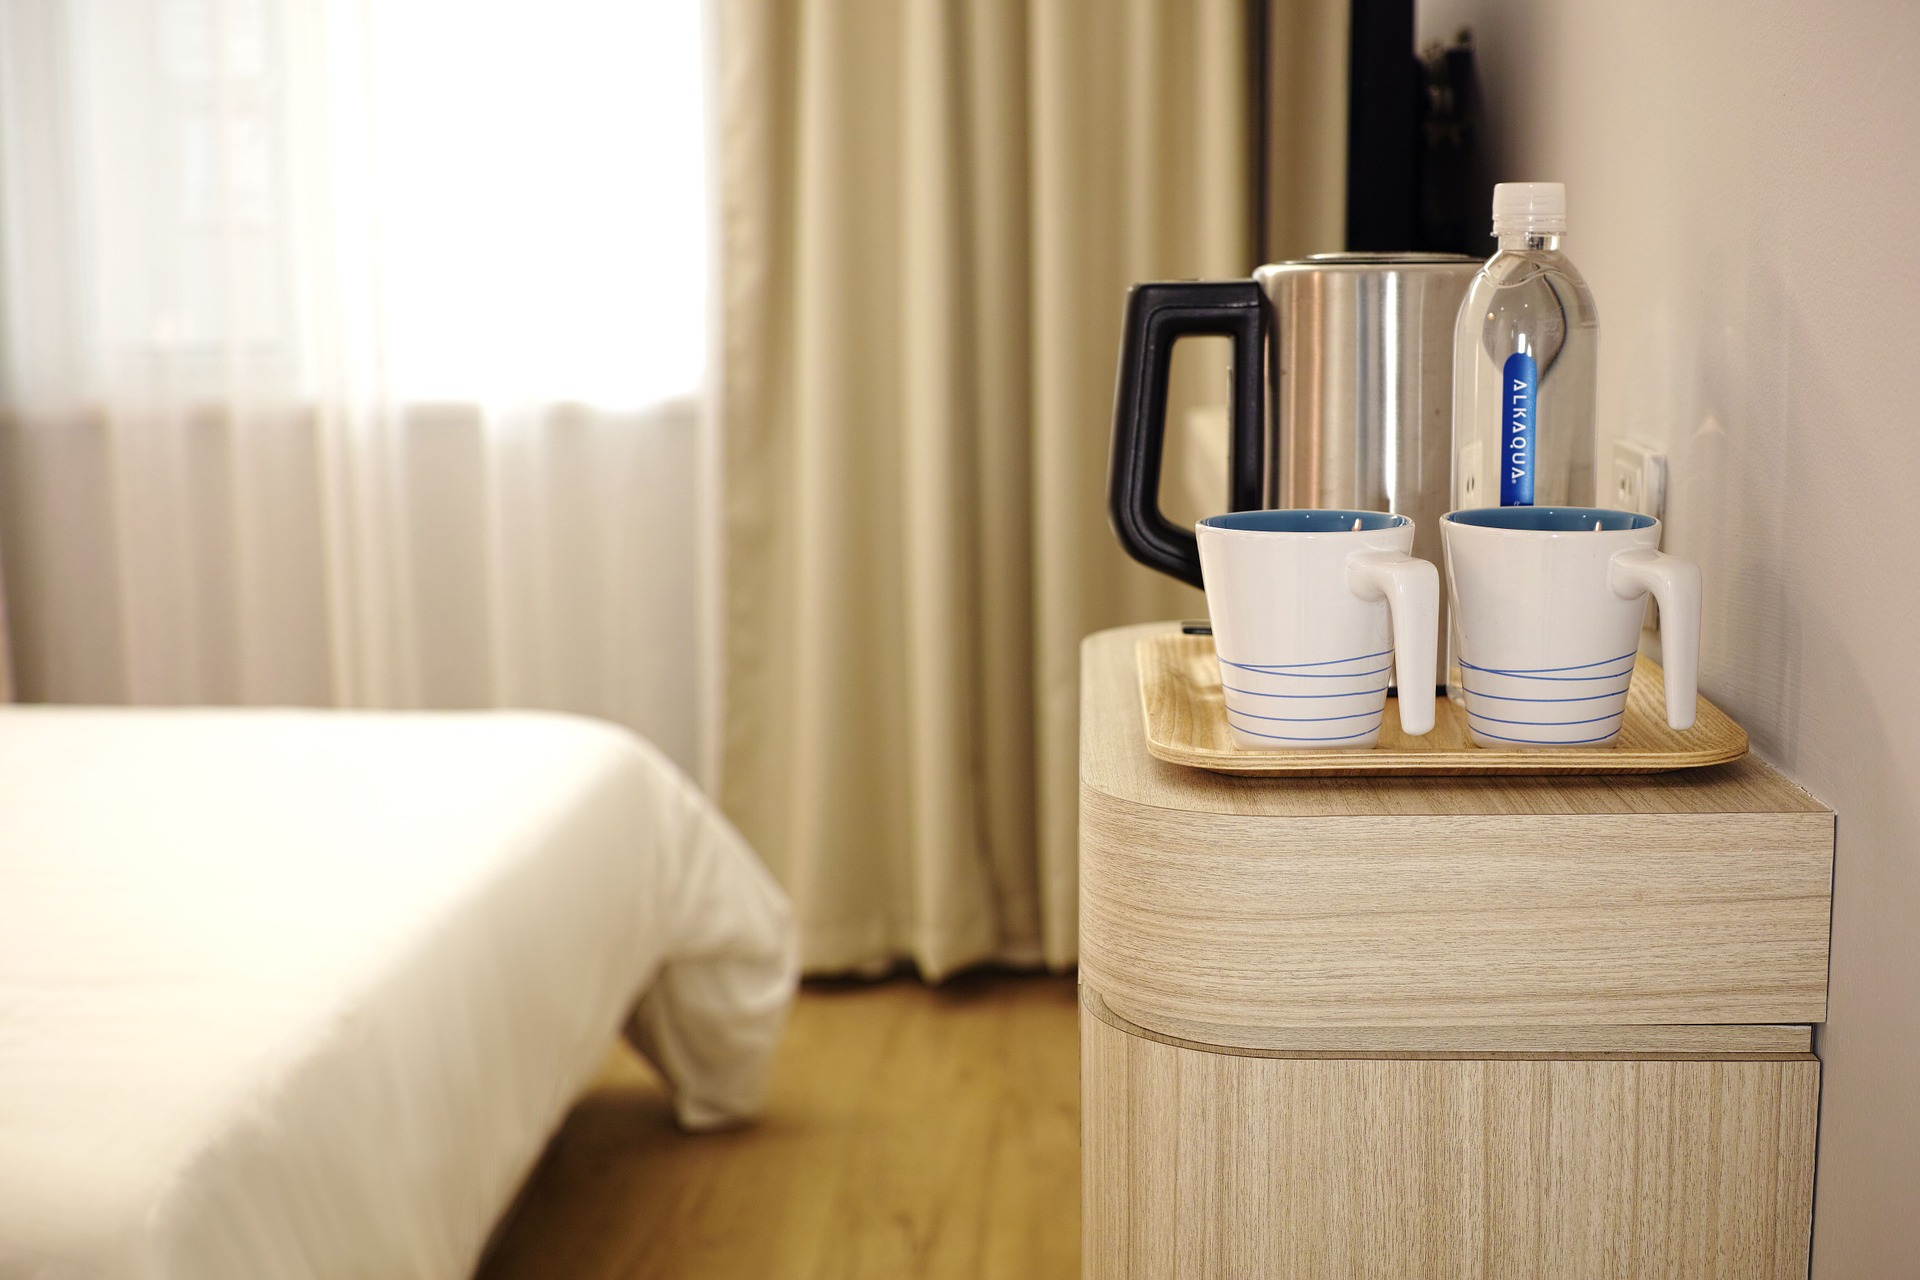 tea, coffee pot and water in a hotel room